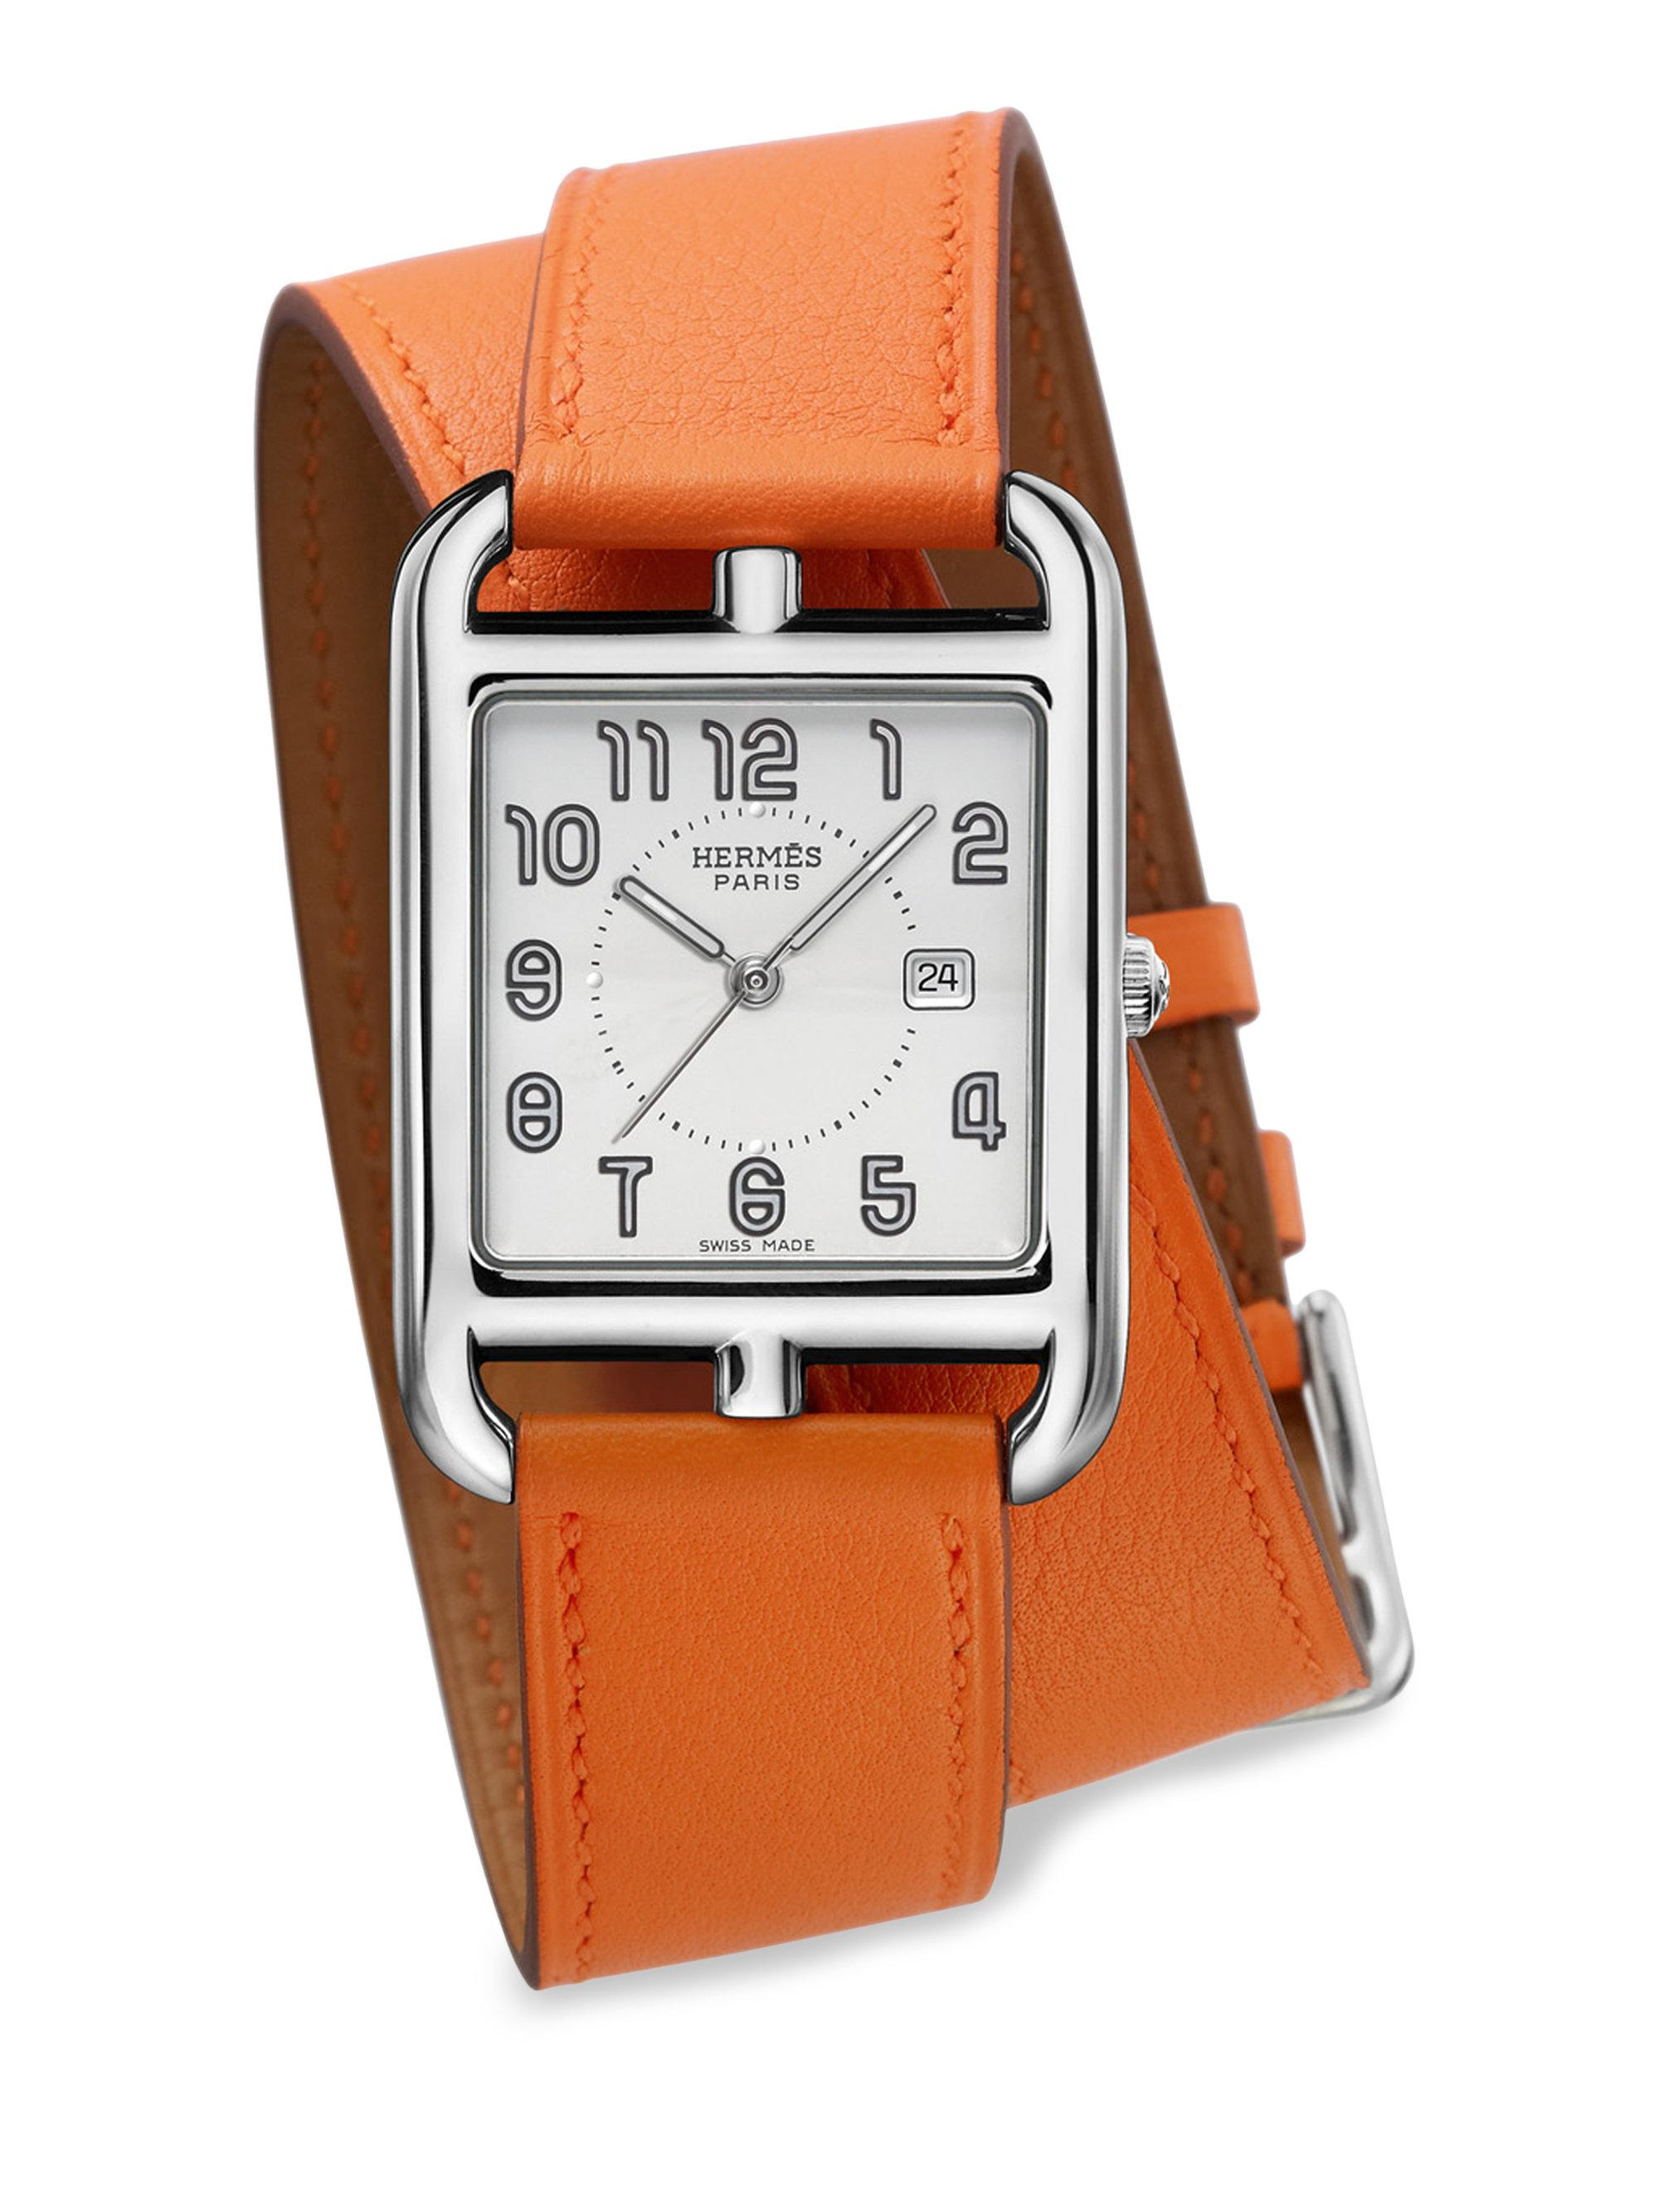 slim hermes dance d watches joray dhermes savana claude copyright s herm